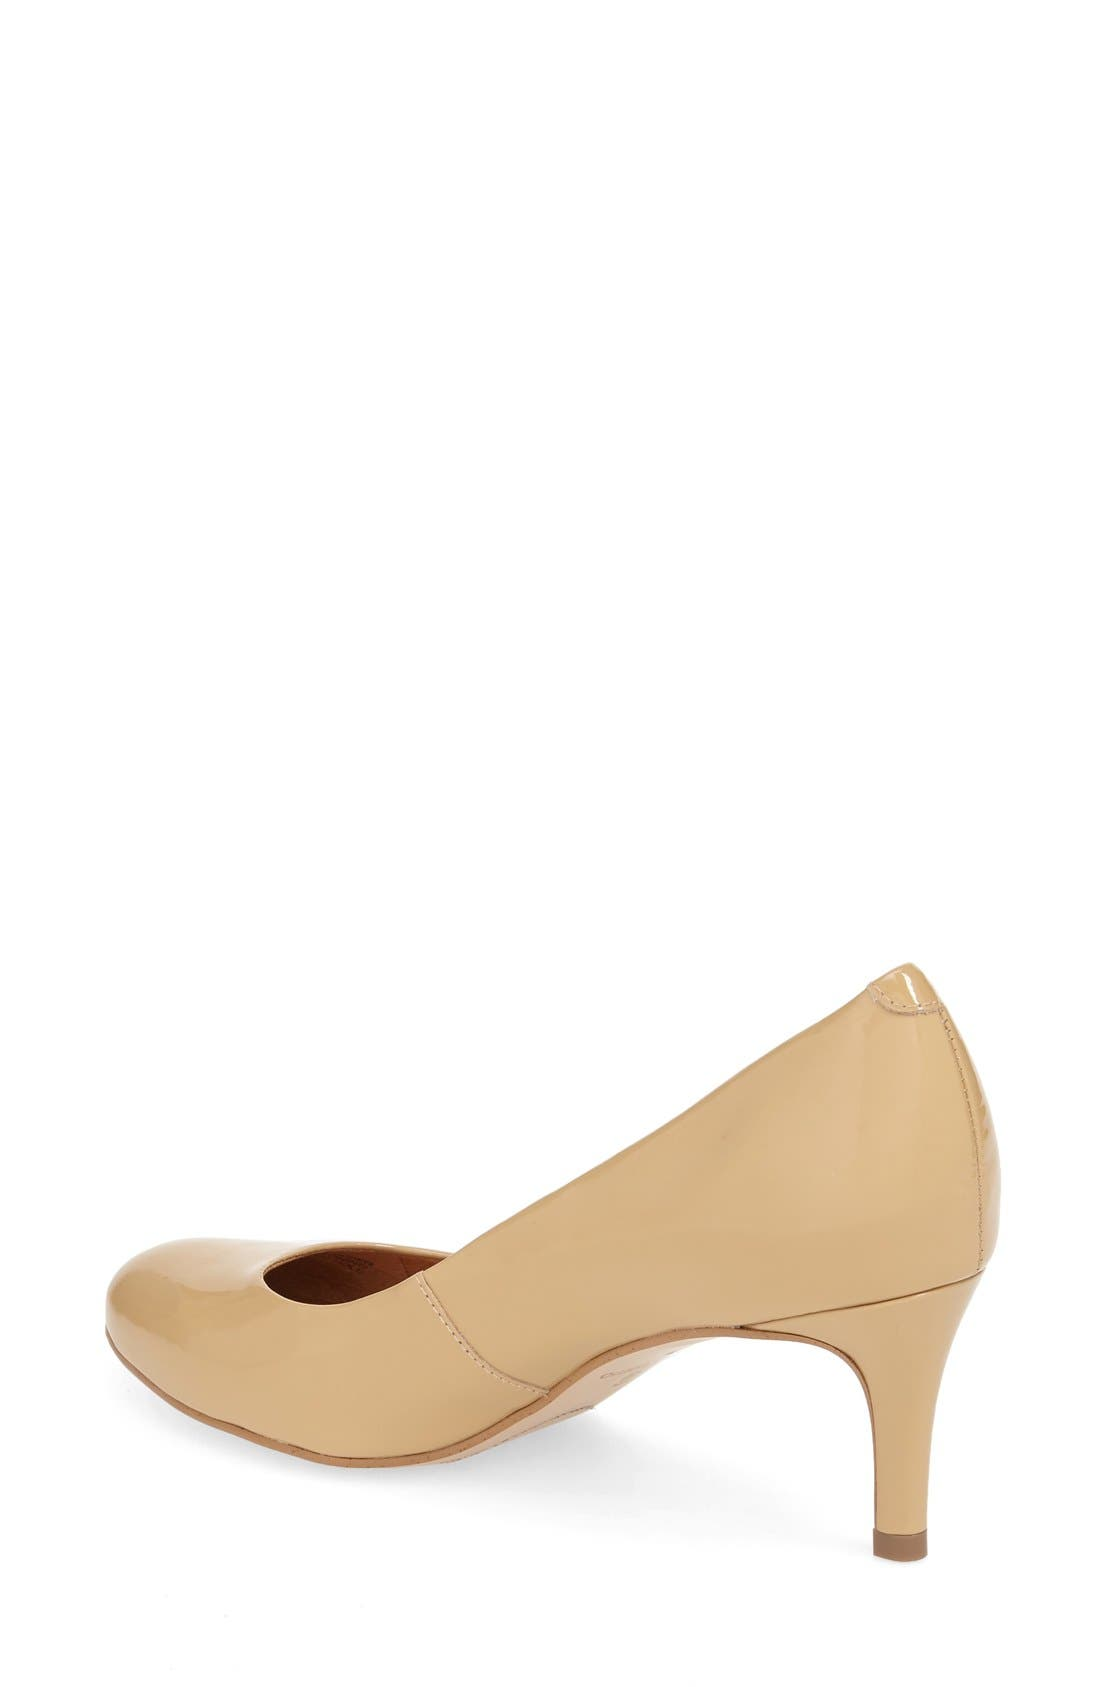 CC Corso Como 'Linden' Pump,                             Alternate thumbnail 8, color,